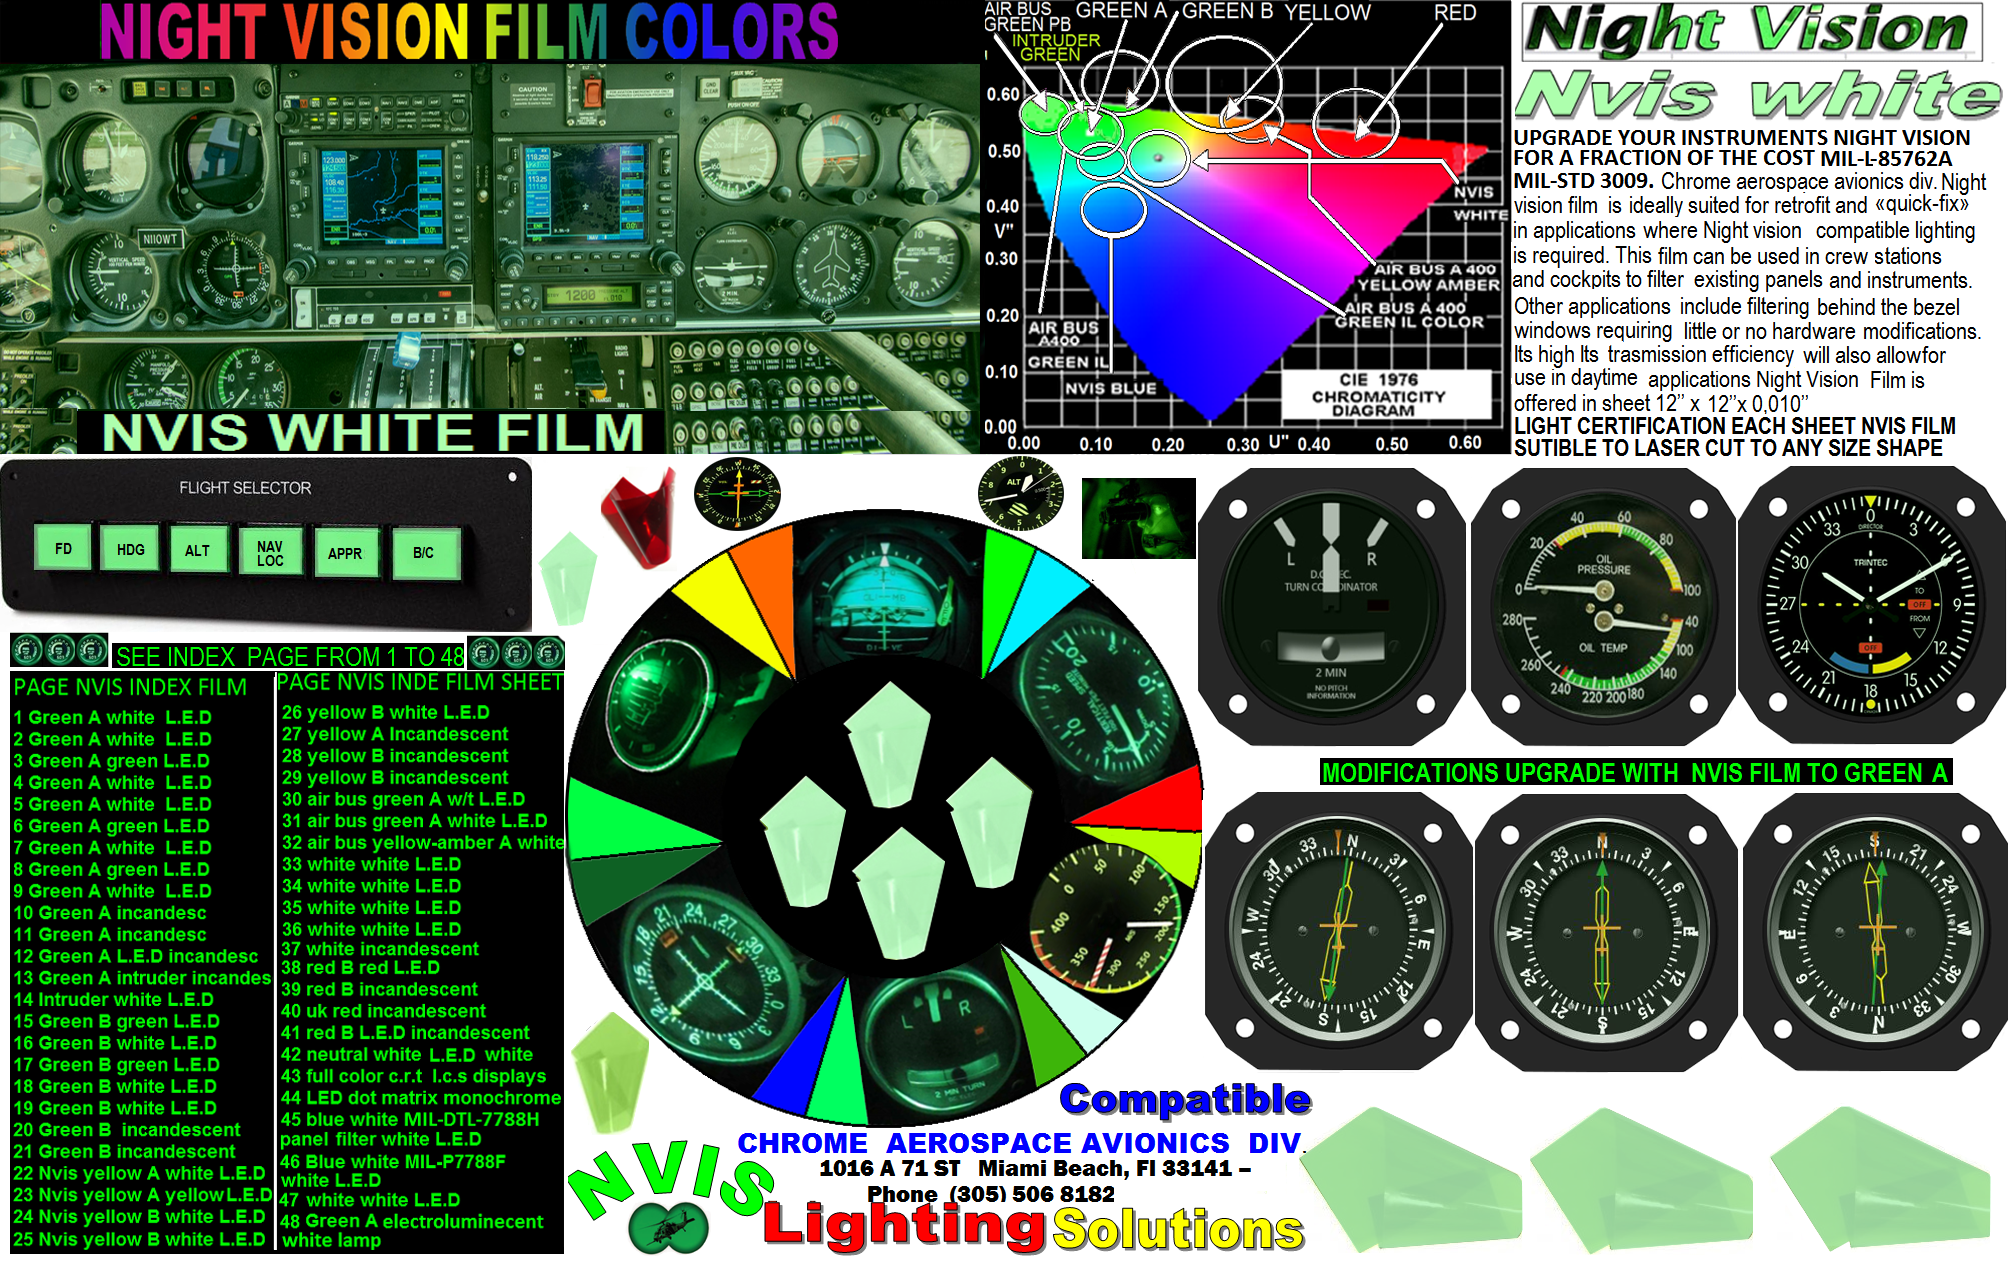 16  NVIS WHITE  FILM UPGRADE CONVERSION INSTRUMENTS   4-24-20.png